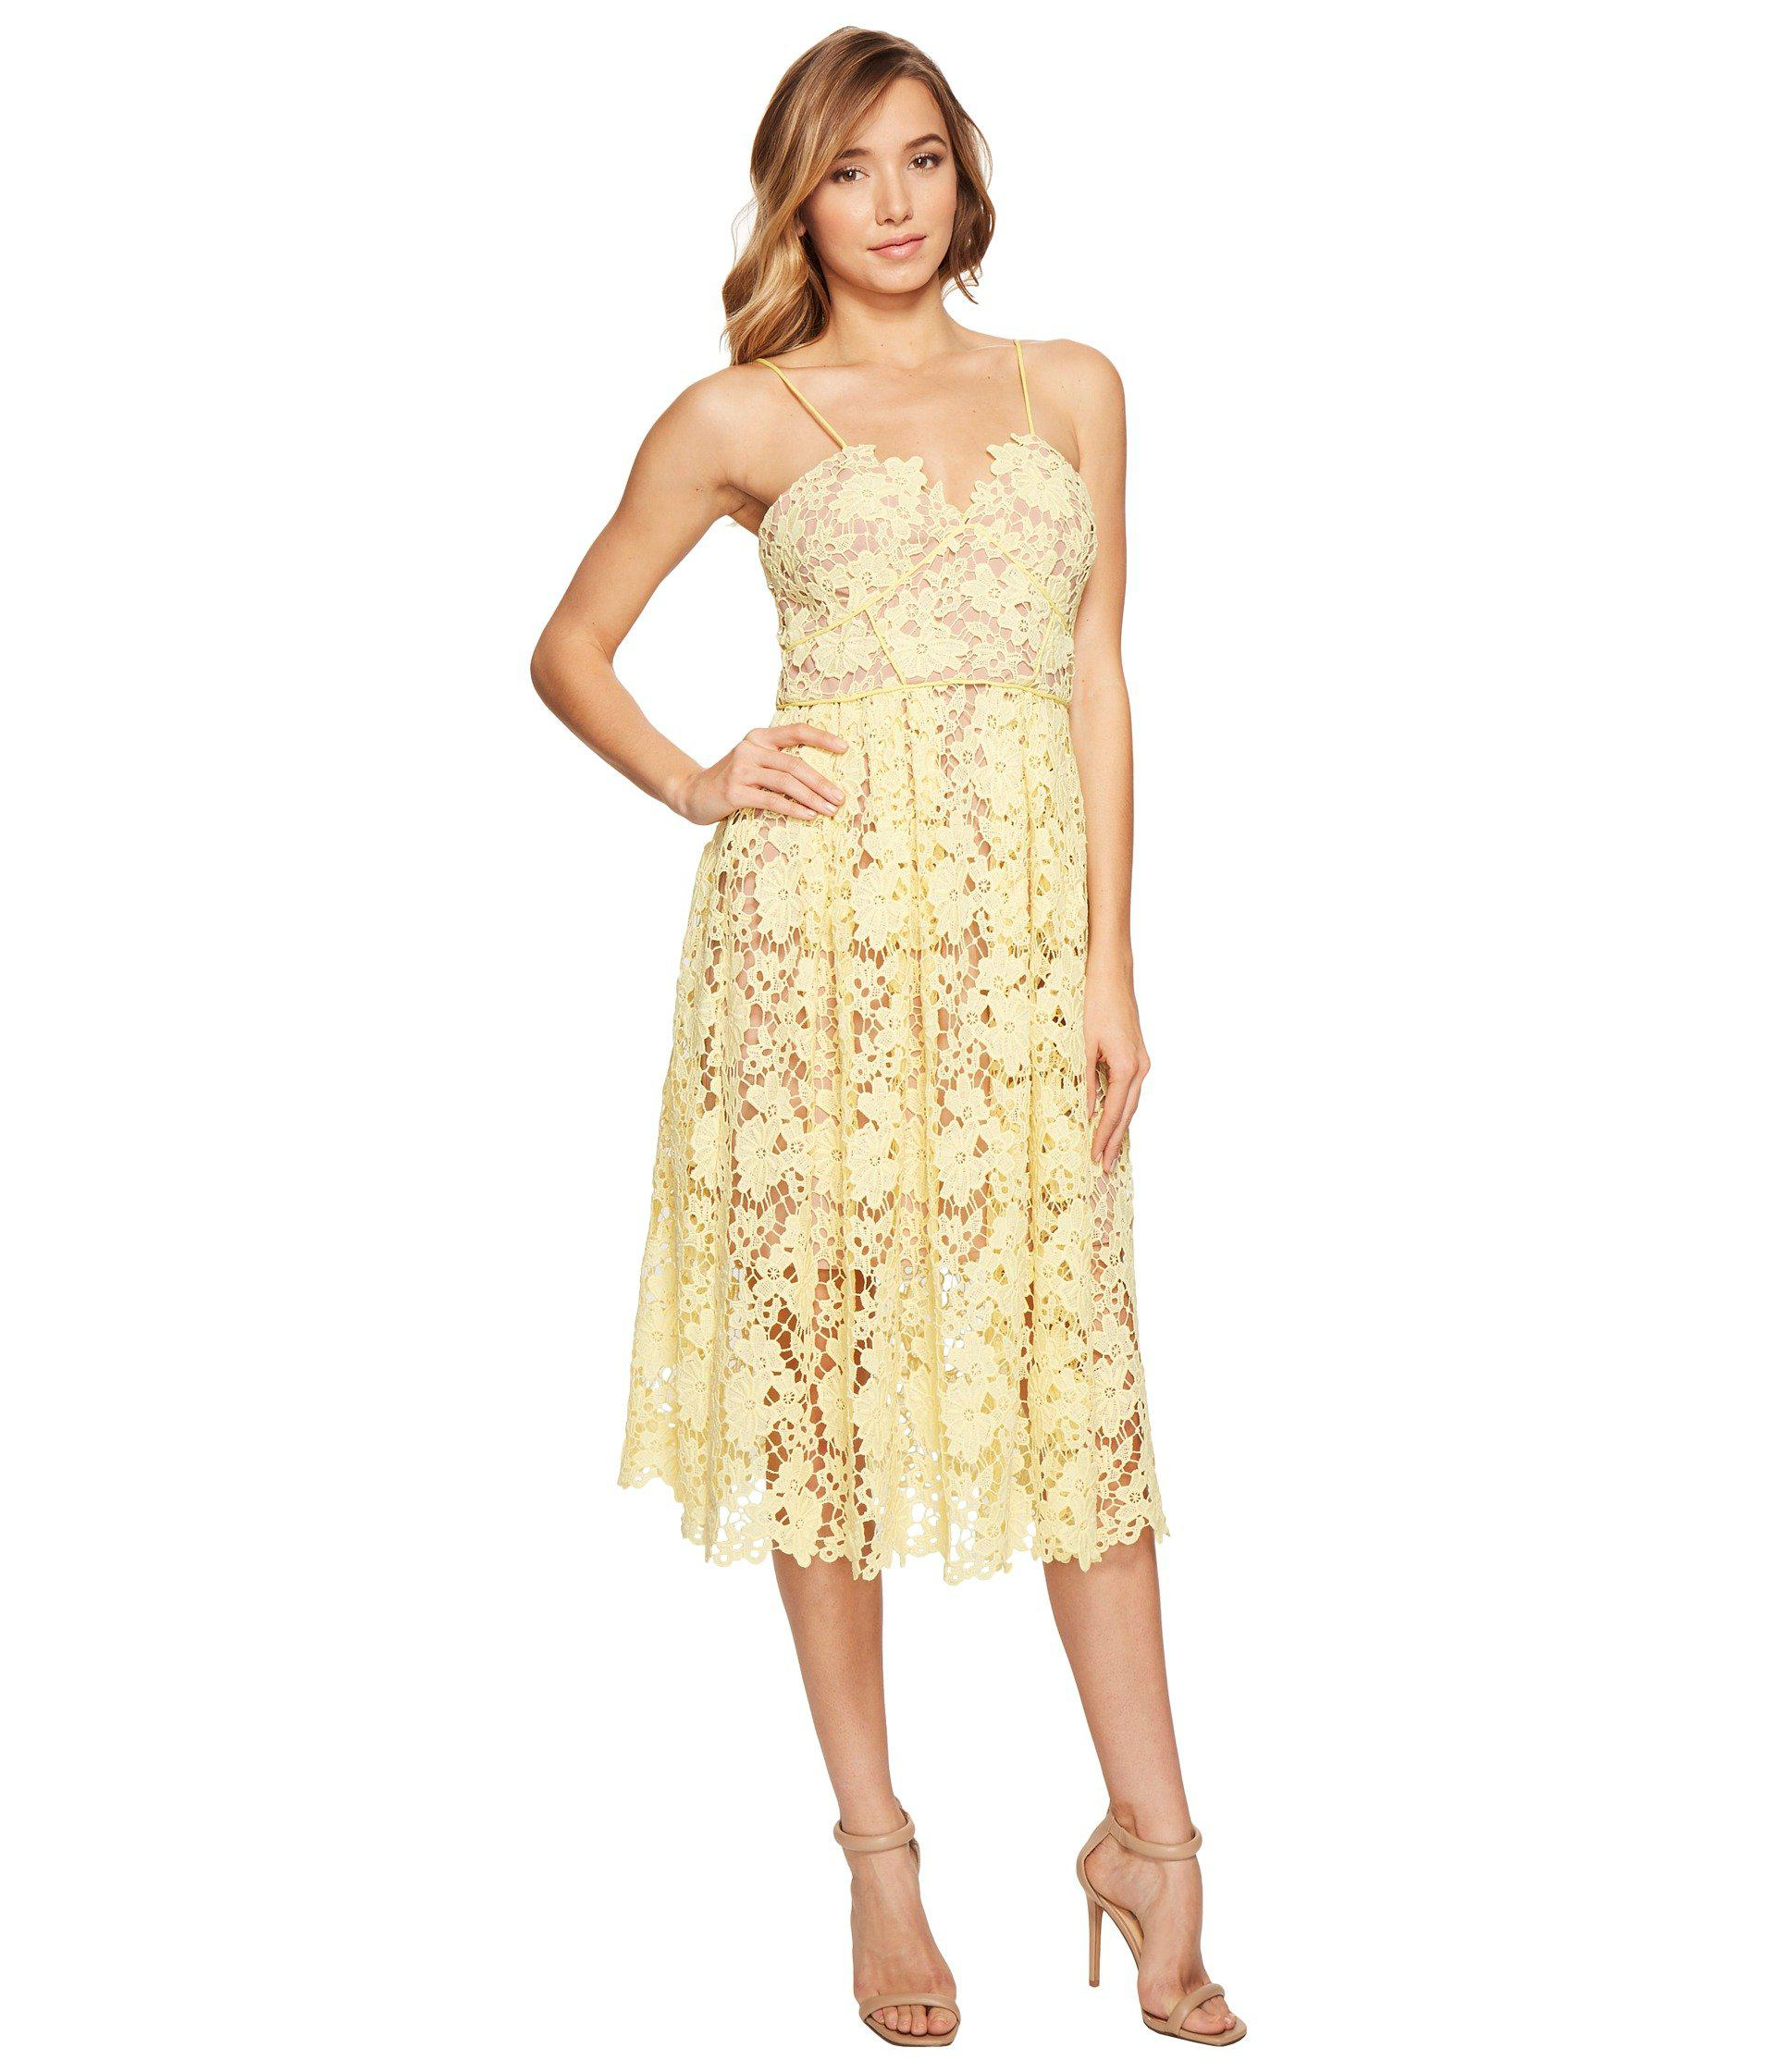 57aa1c7d9daa Donna Morgan Chemical Lace Spaghetti Strap Midi in Yellow - Lyst